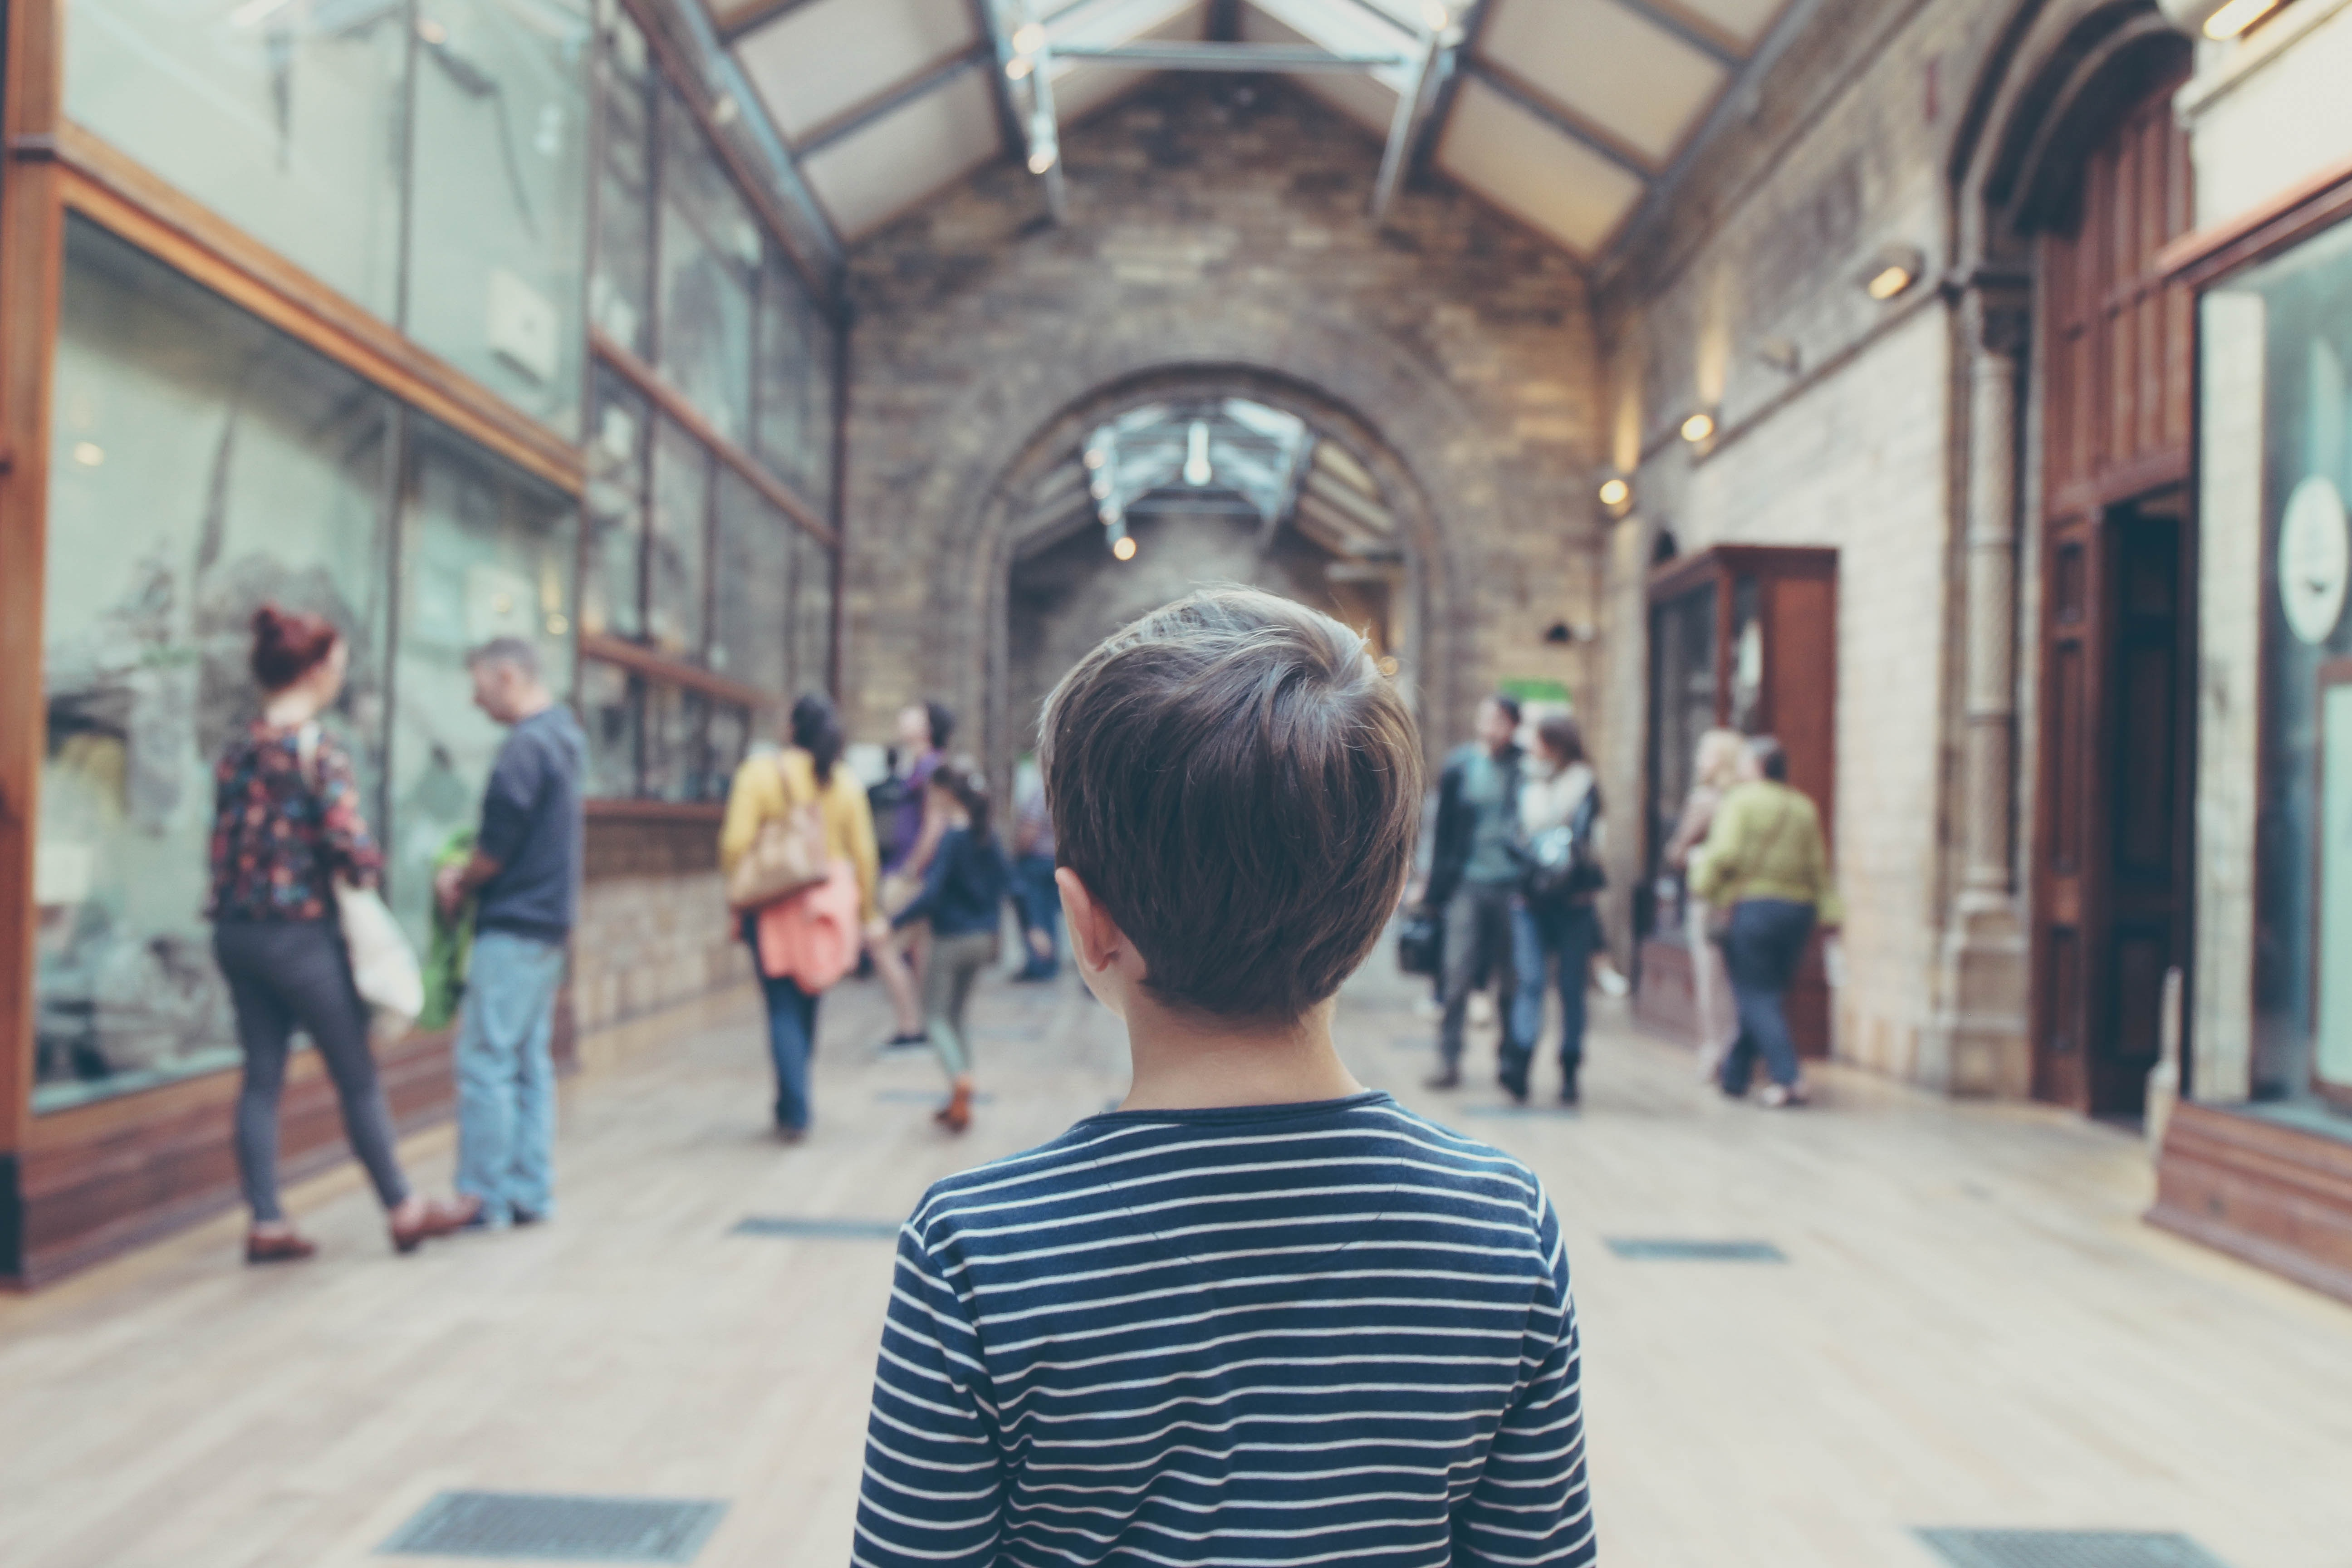 Fun Museums to Check Out in Collingwood